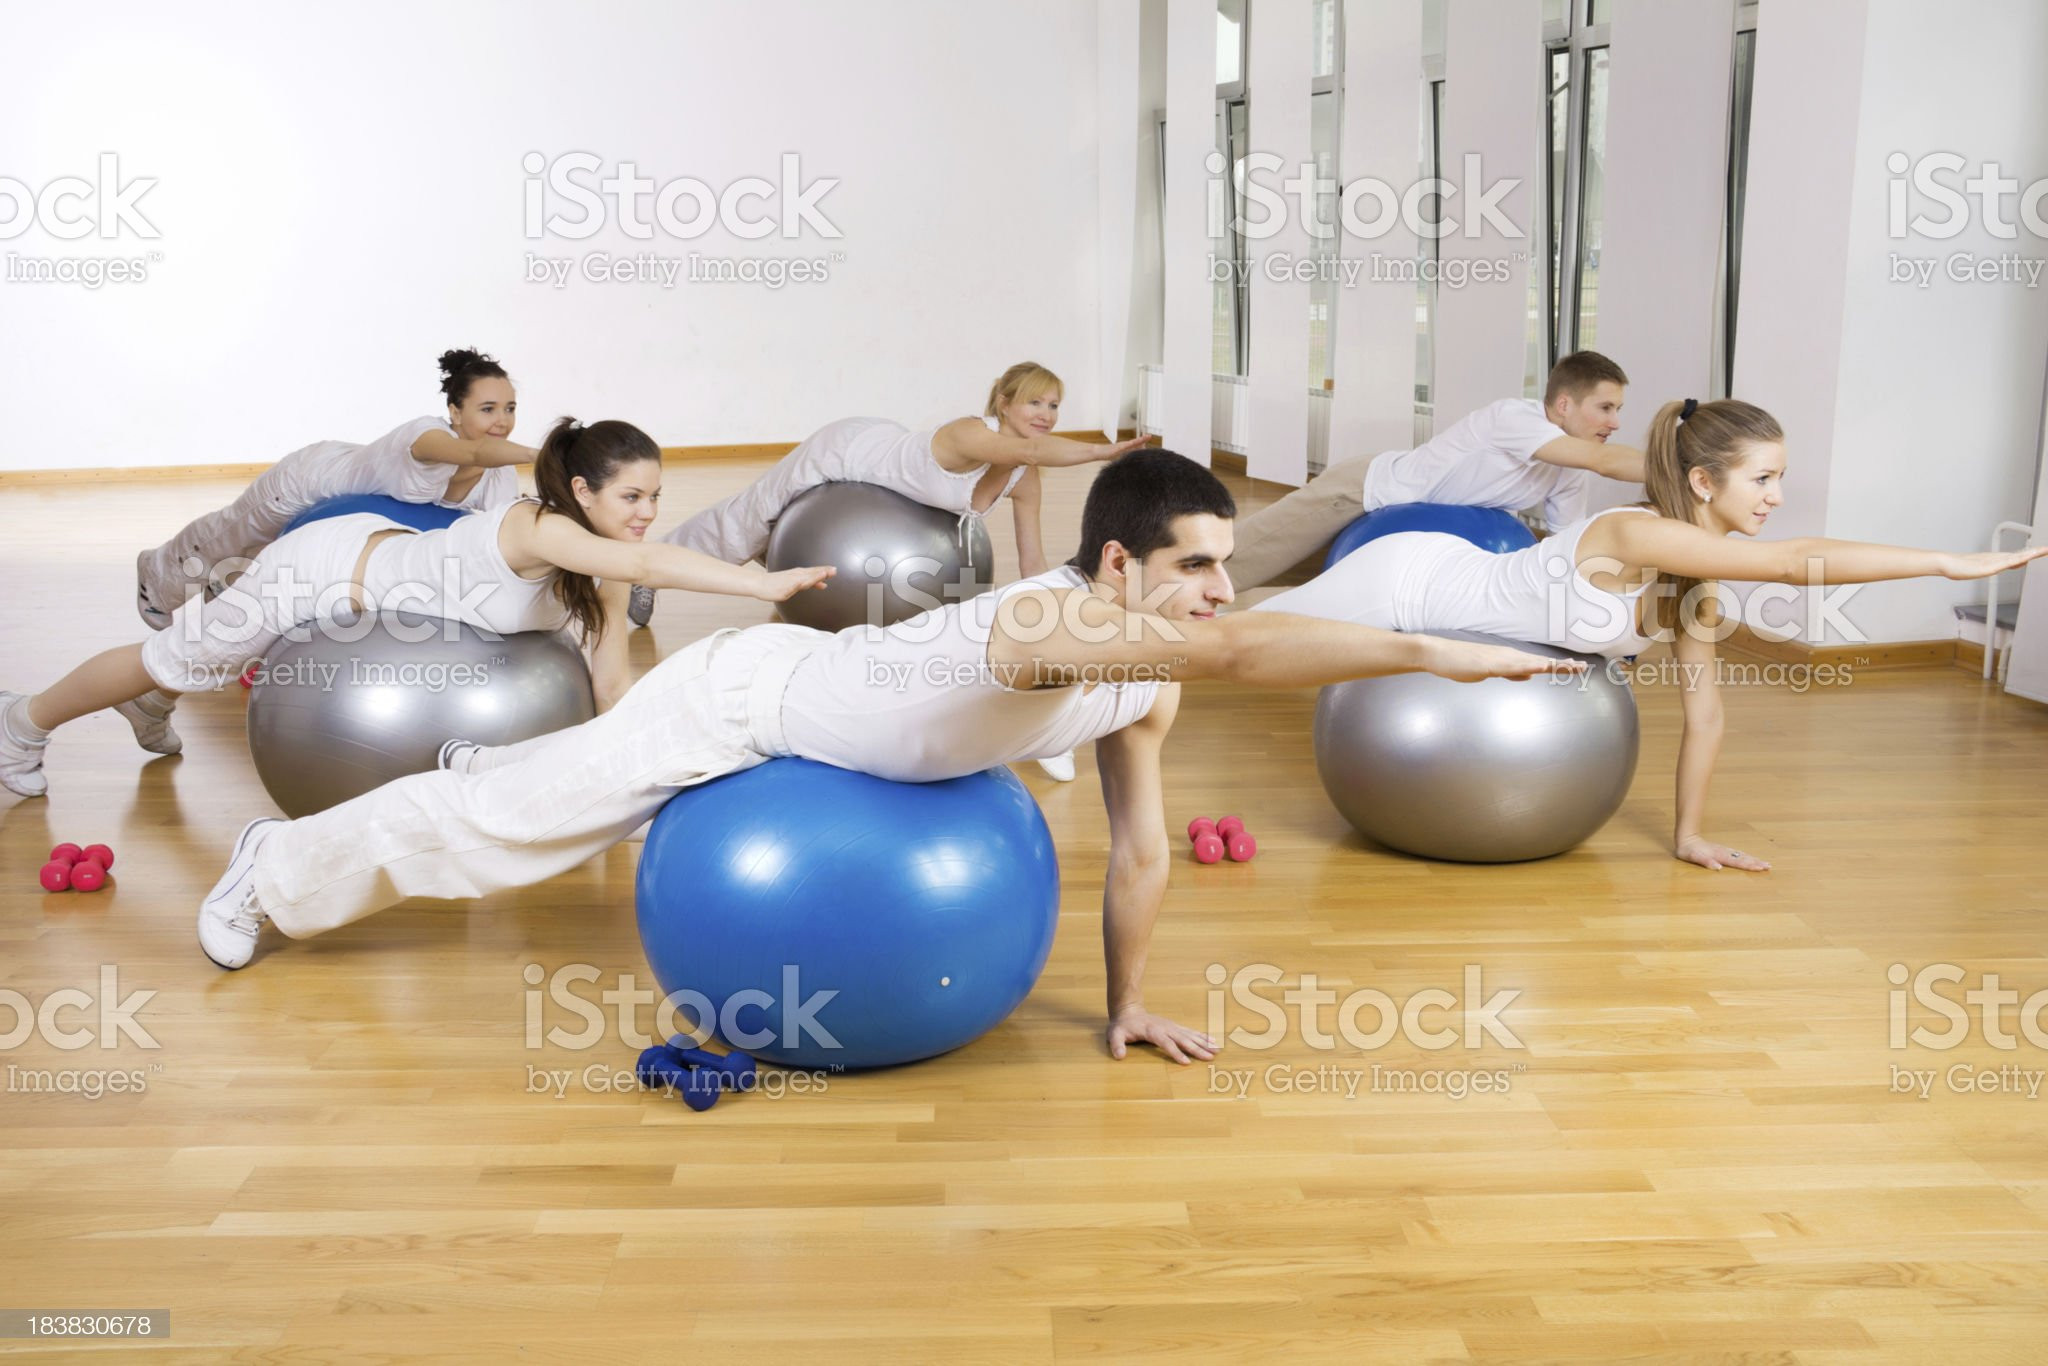 Group of people exercising on fitness balls. royalty-free stock photo